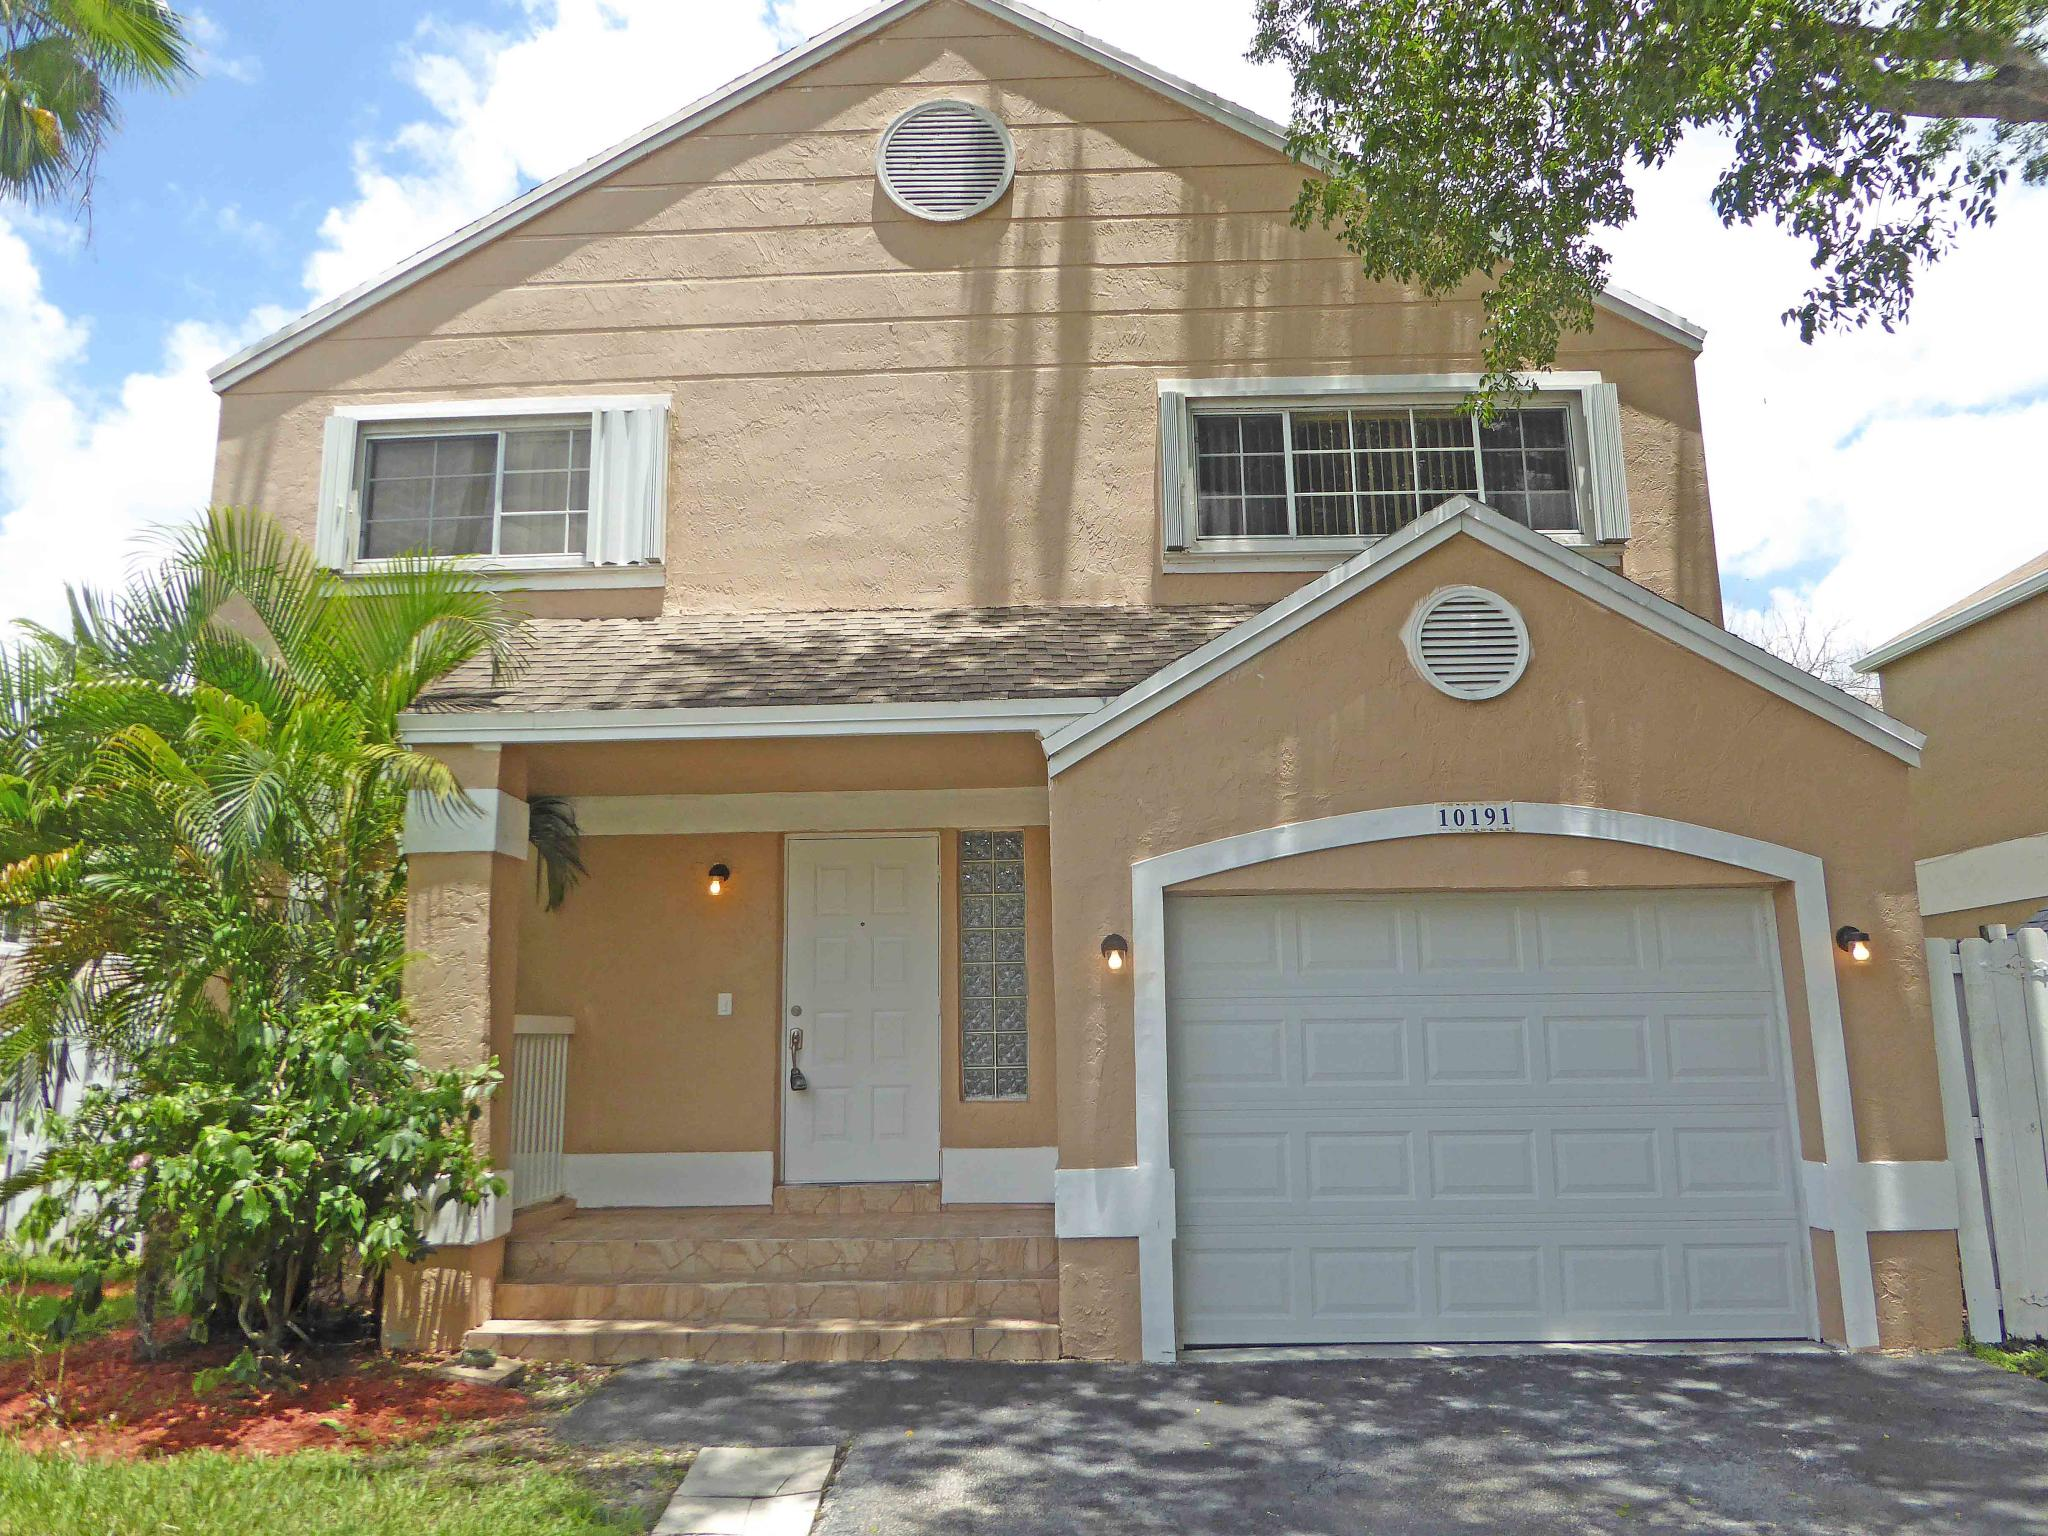 10191 nw 3rd st pembroke pines fl 33026 for rent trulia